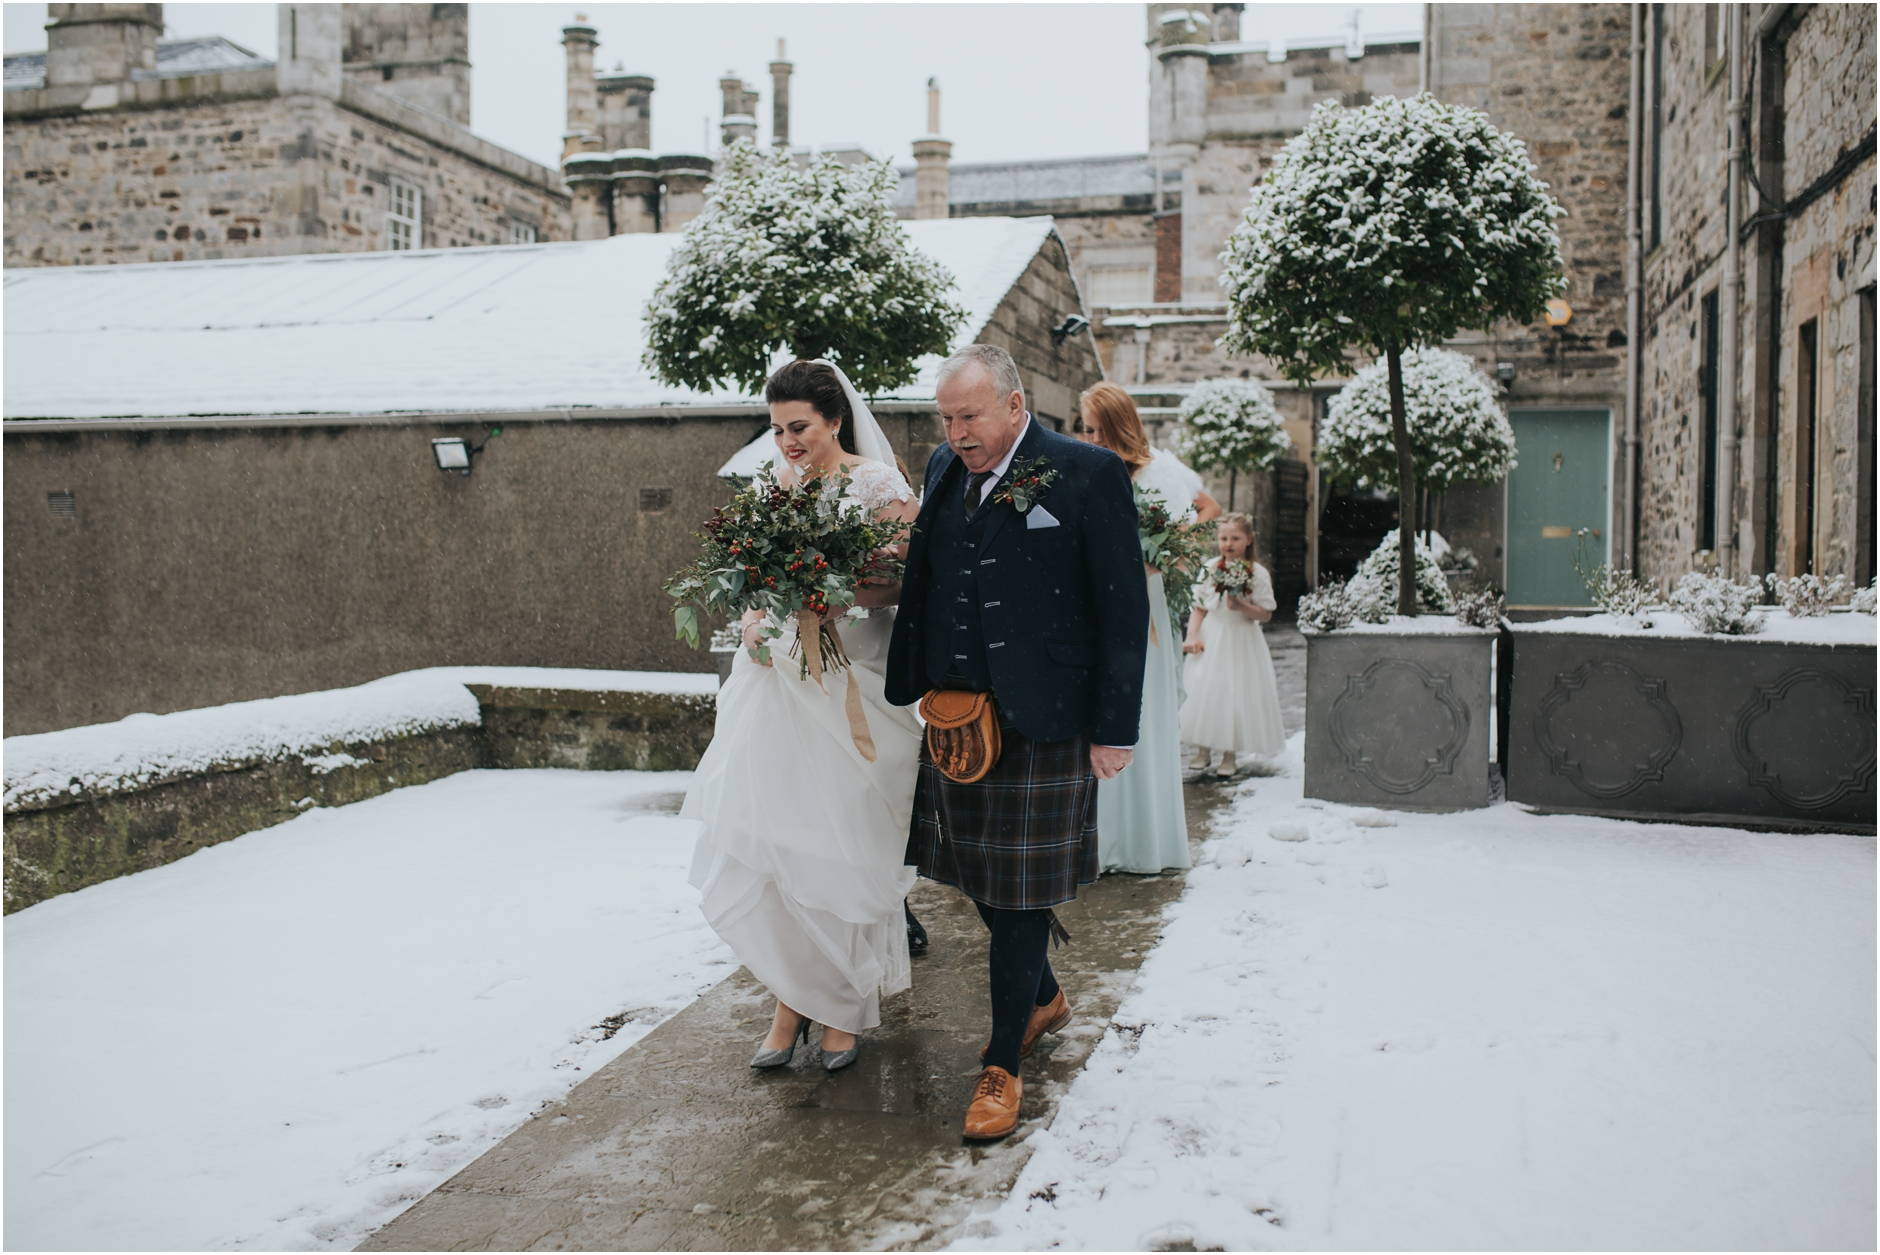 dundas castle edinburgh wedding winter snowy bride and her dad walking across the snow before the ceremony